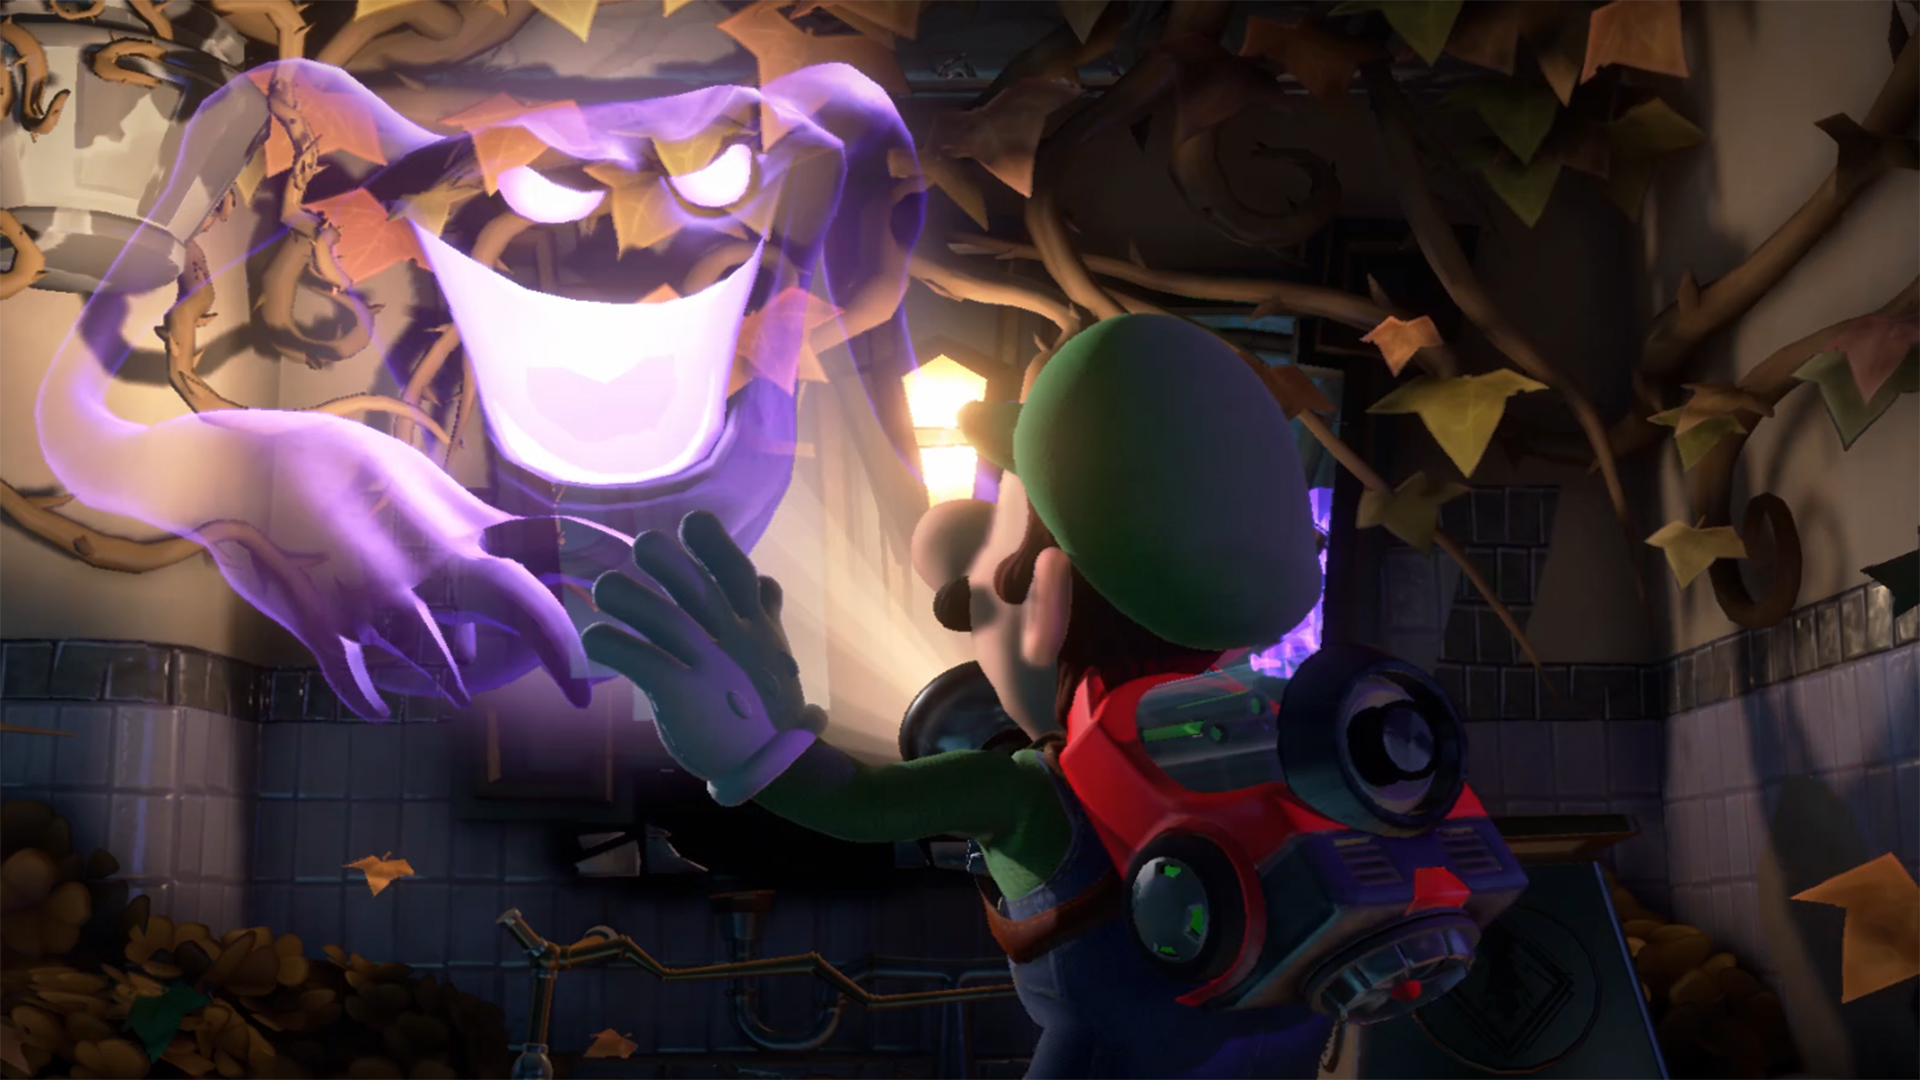 Luigi S Mansion 3 Is Packed Full Of Ghastly Ghosts Charming